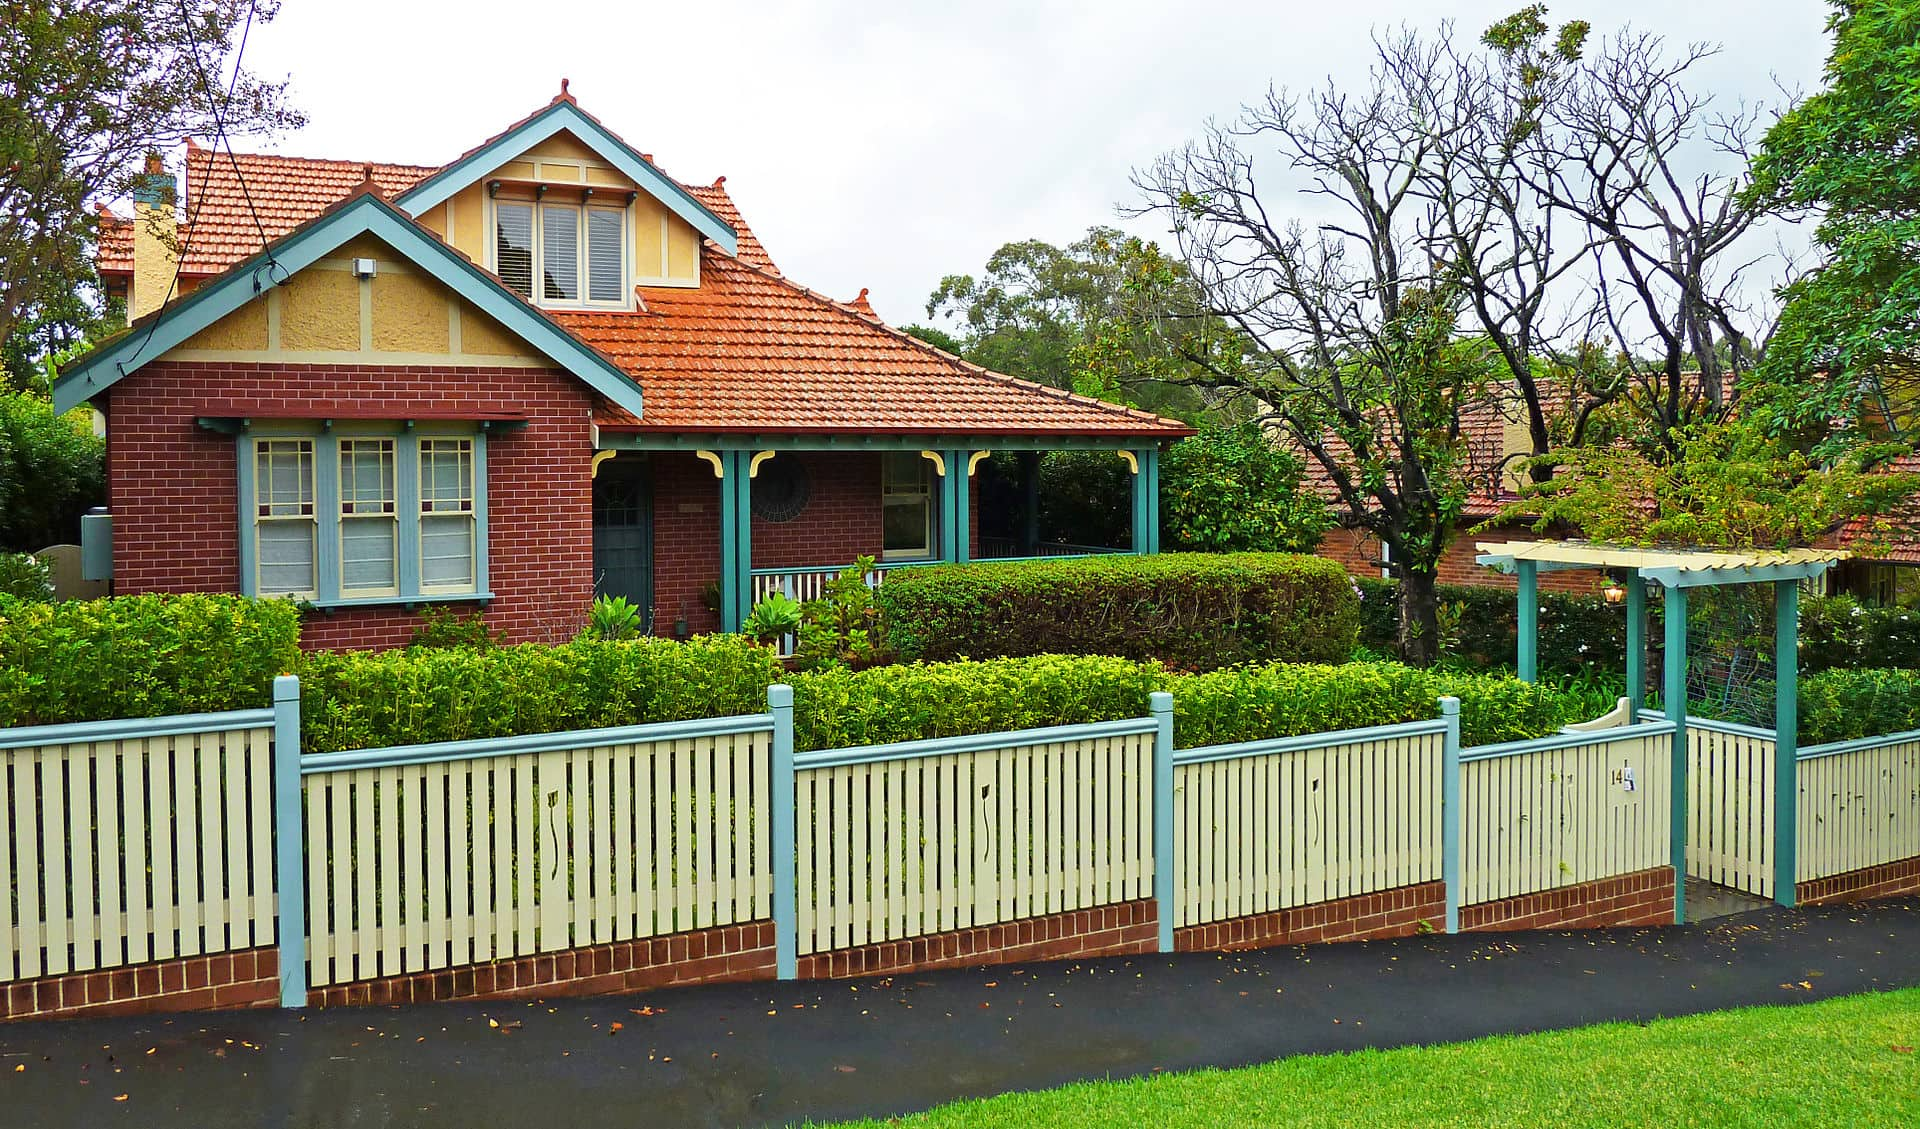 14 Kelburn Road, Roseville, New South Wales, Australia. Built c. 1915.